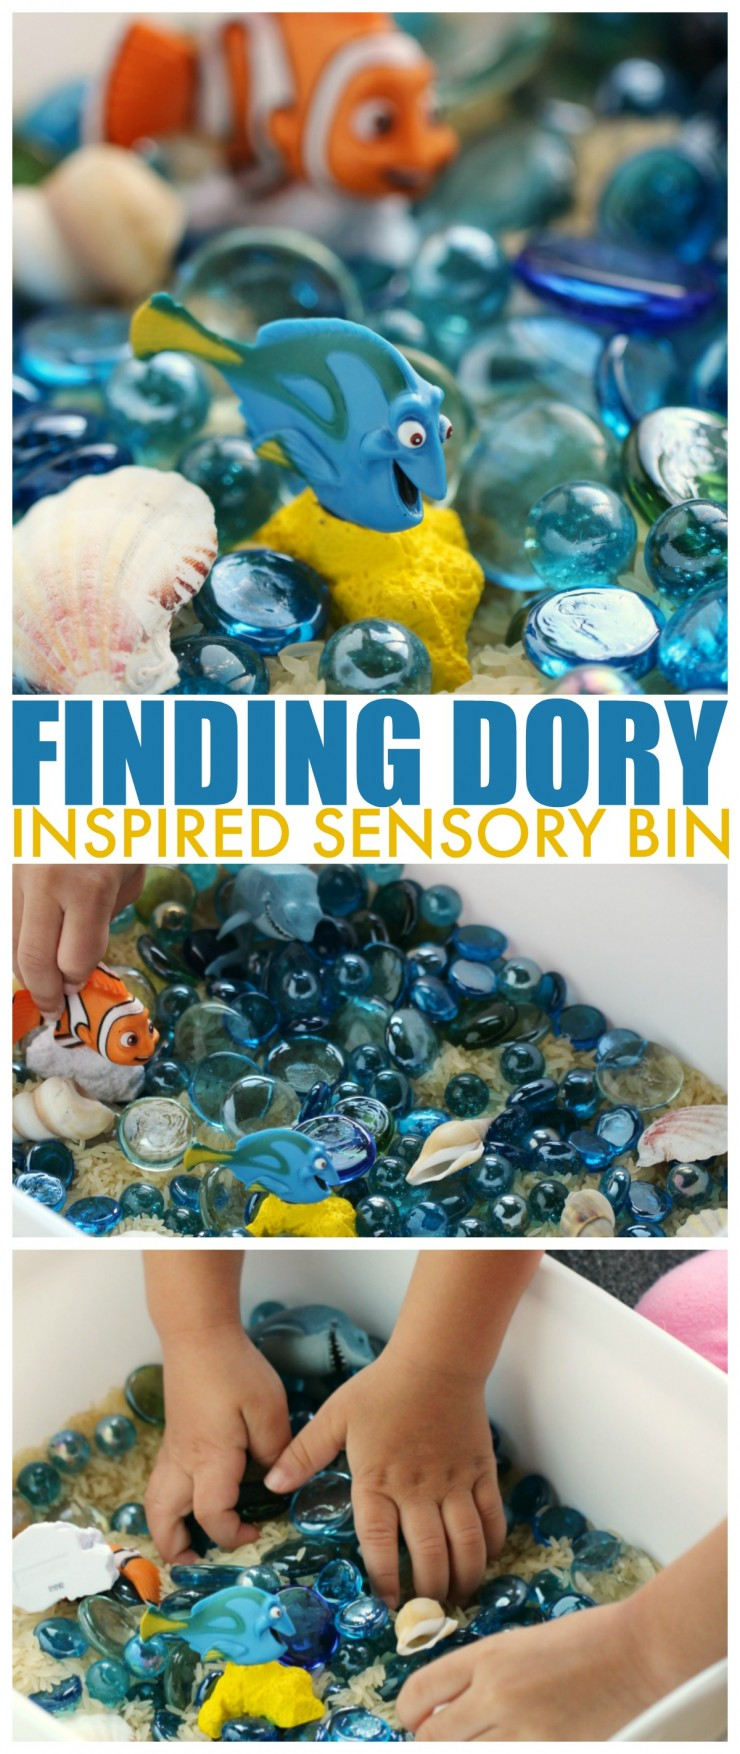 This Finding Dory Inspired Sensory Bin is the perfect kids activity for engaging little Finding Nemo fans this summer. Let your kids explore the ocean habitat with a little imaginative play.